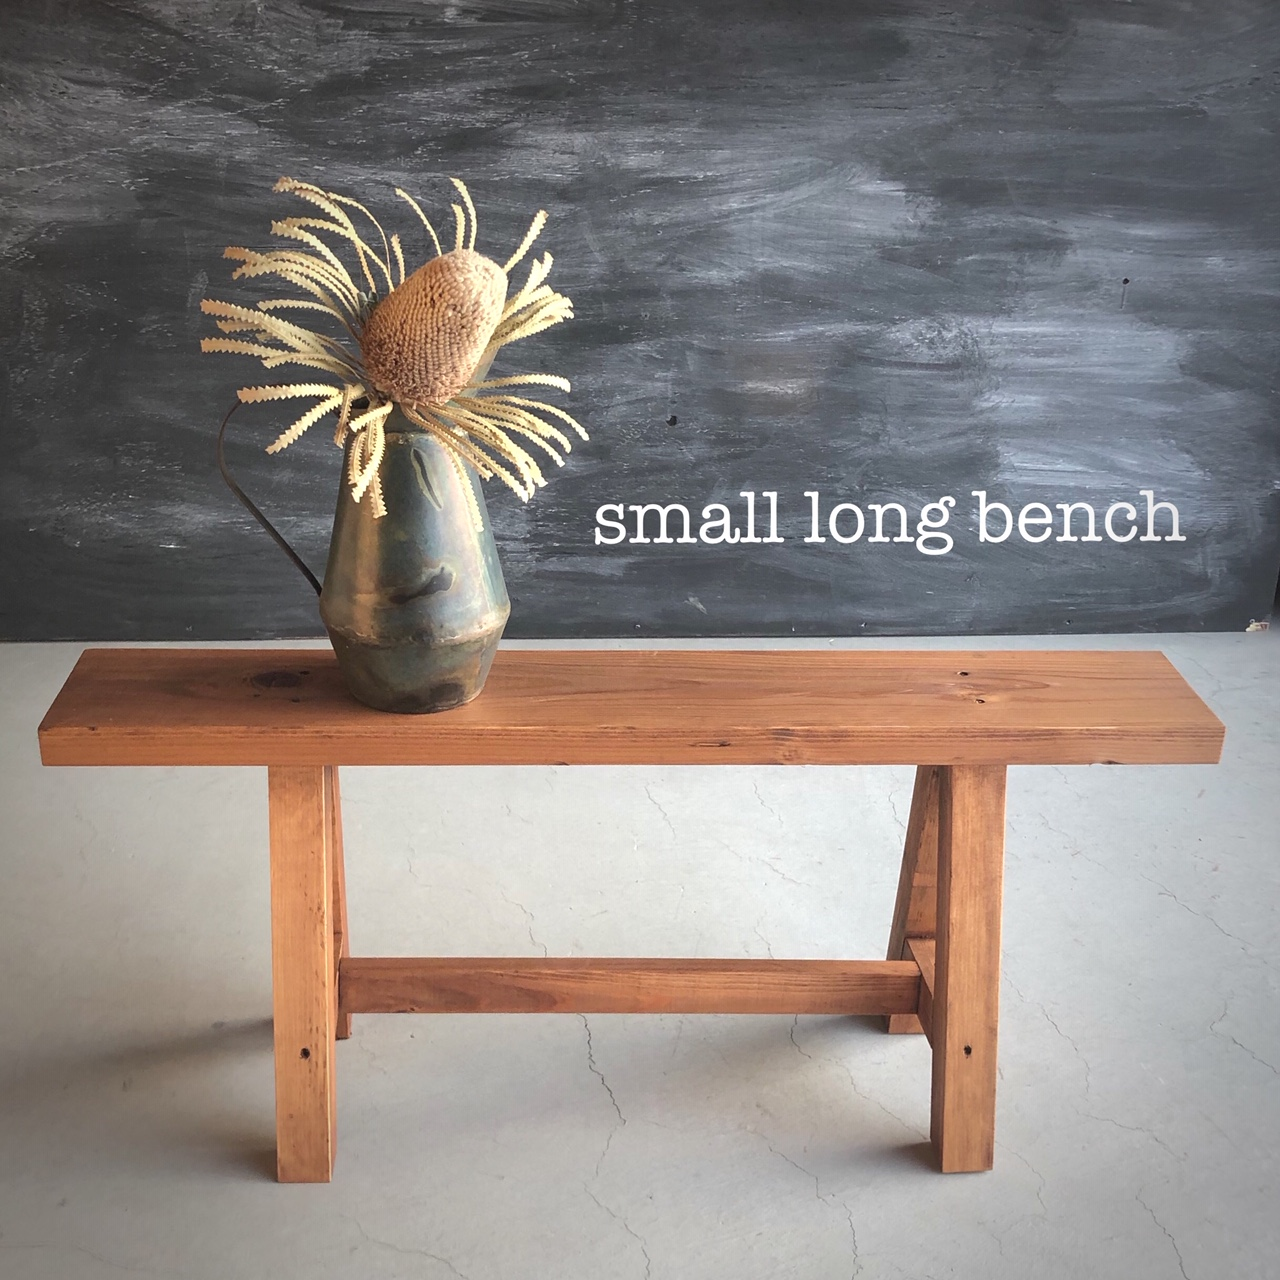 Let's DIY! small long bench 第2弾!